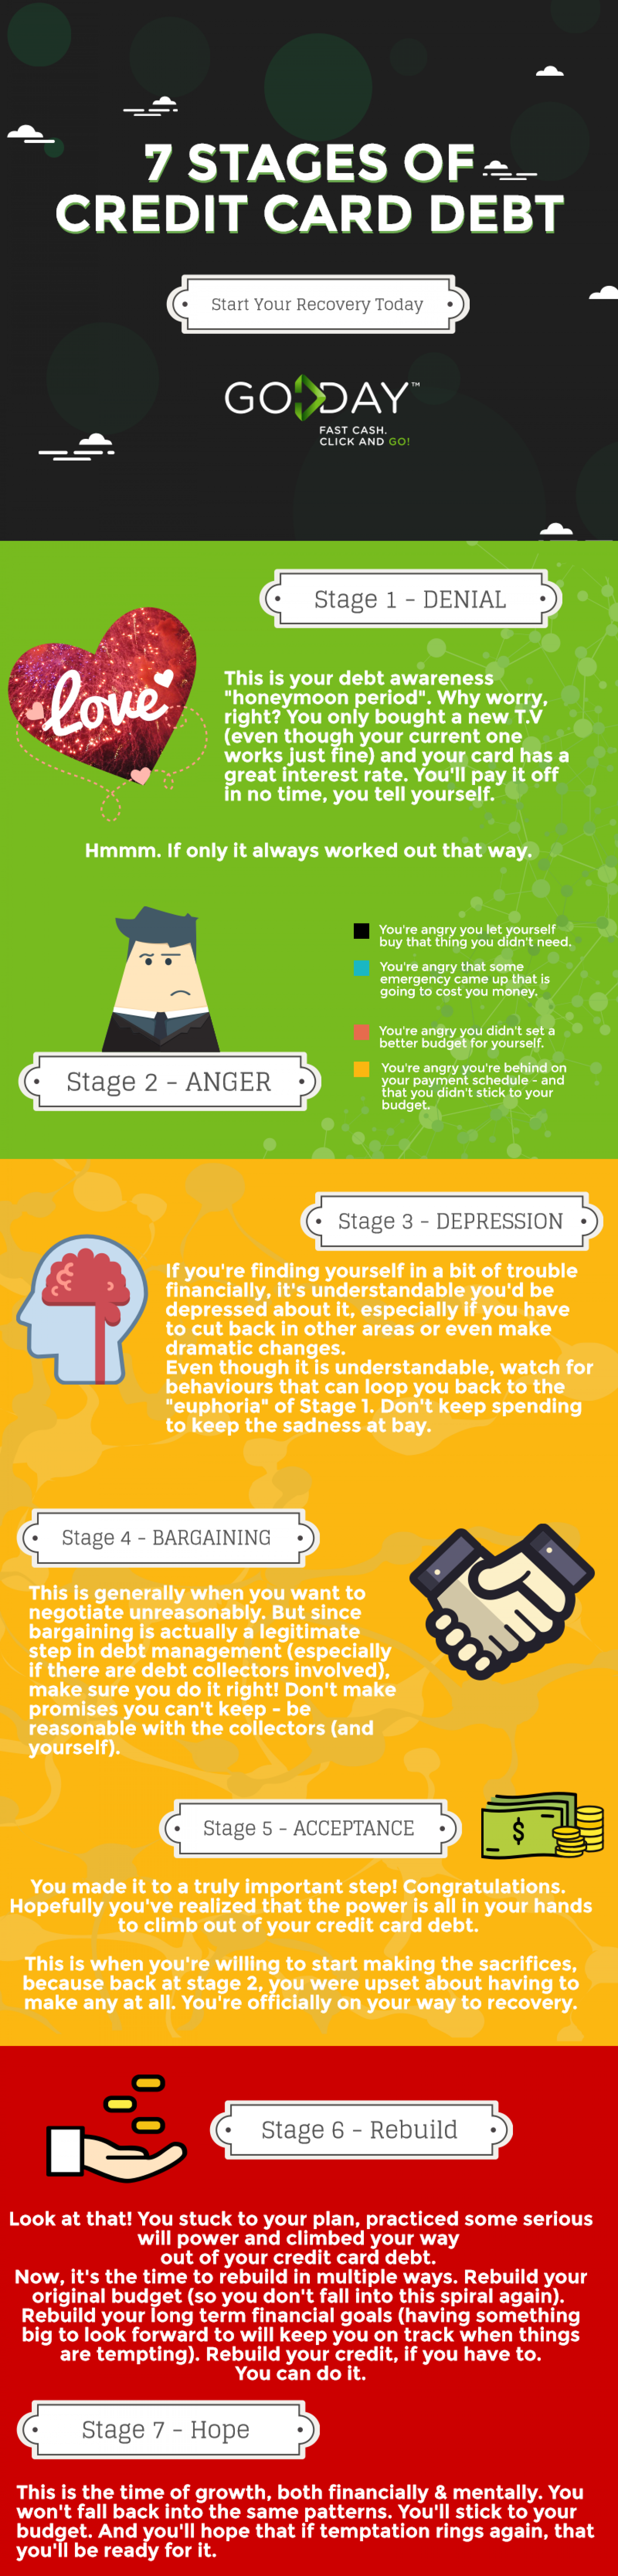 7 Stages of Credit Card Debt Infographic